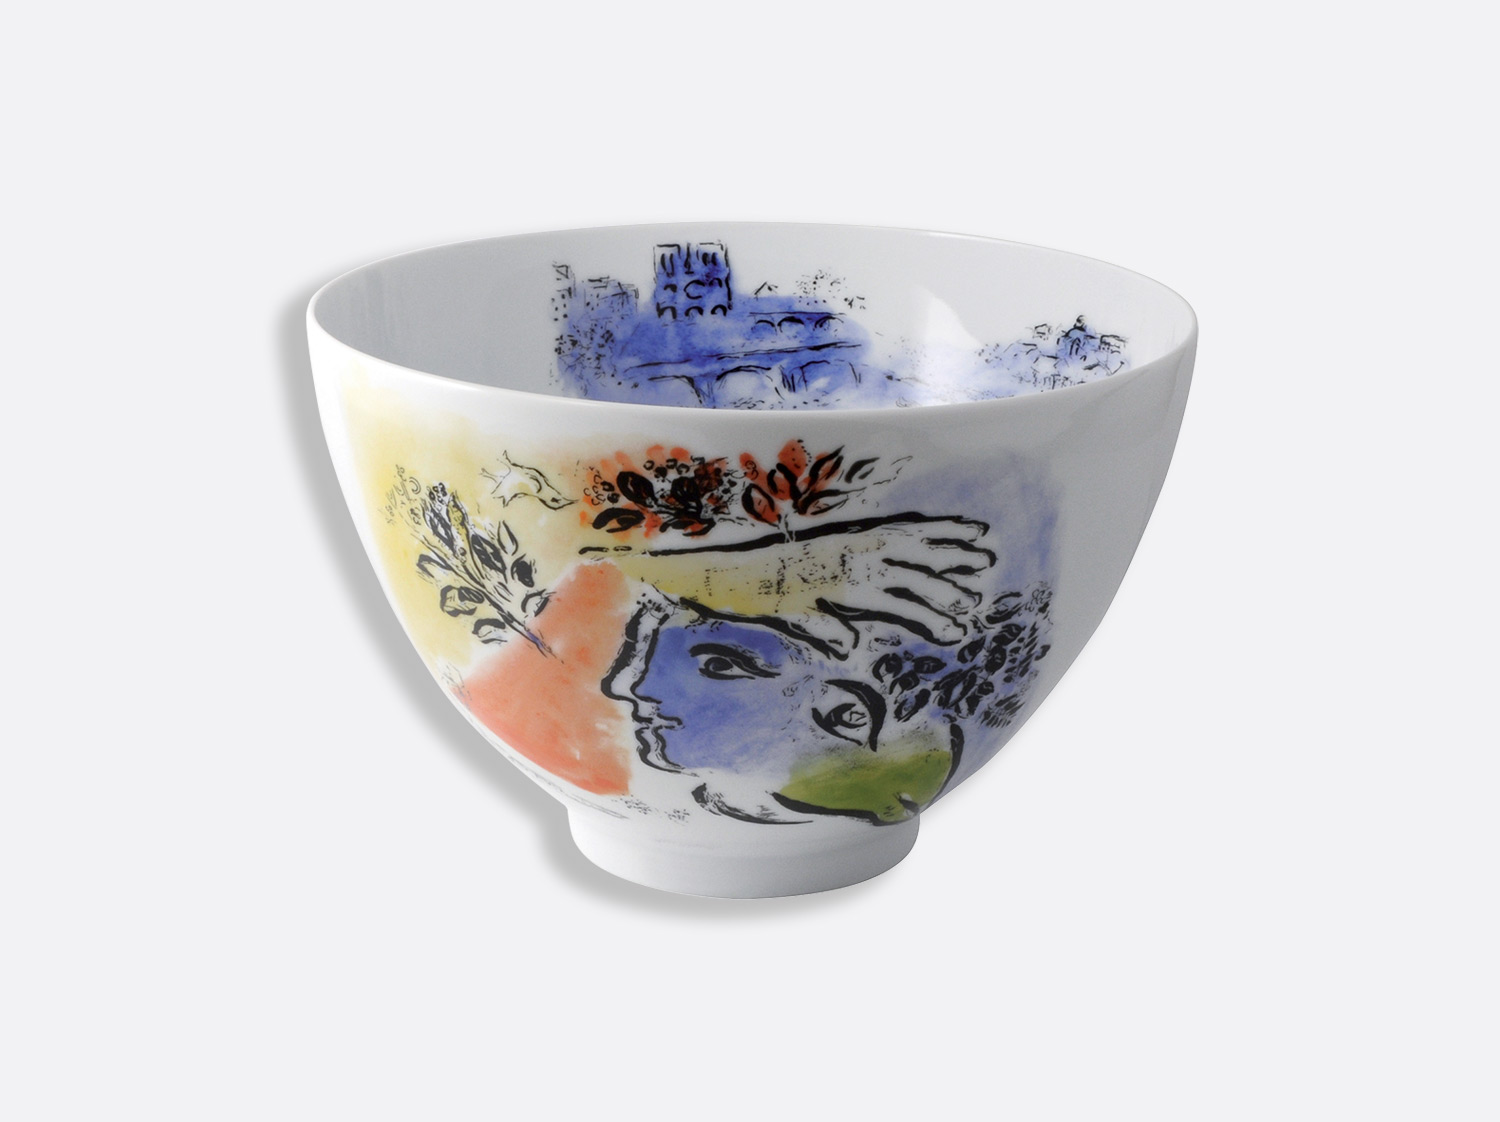 "Saladier haut ""Le ciel bleu"" 27cm en porcelaine de la collection Collect chagall le ciel bleu 1964 Bernardaud"